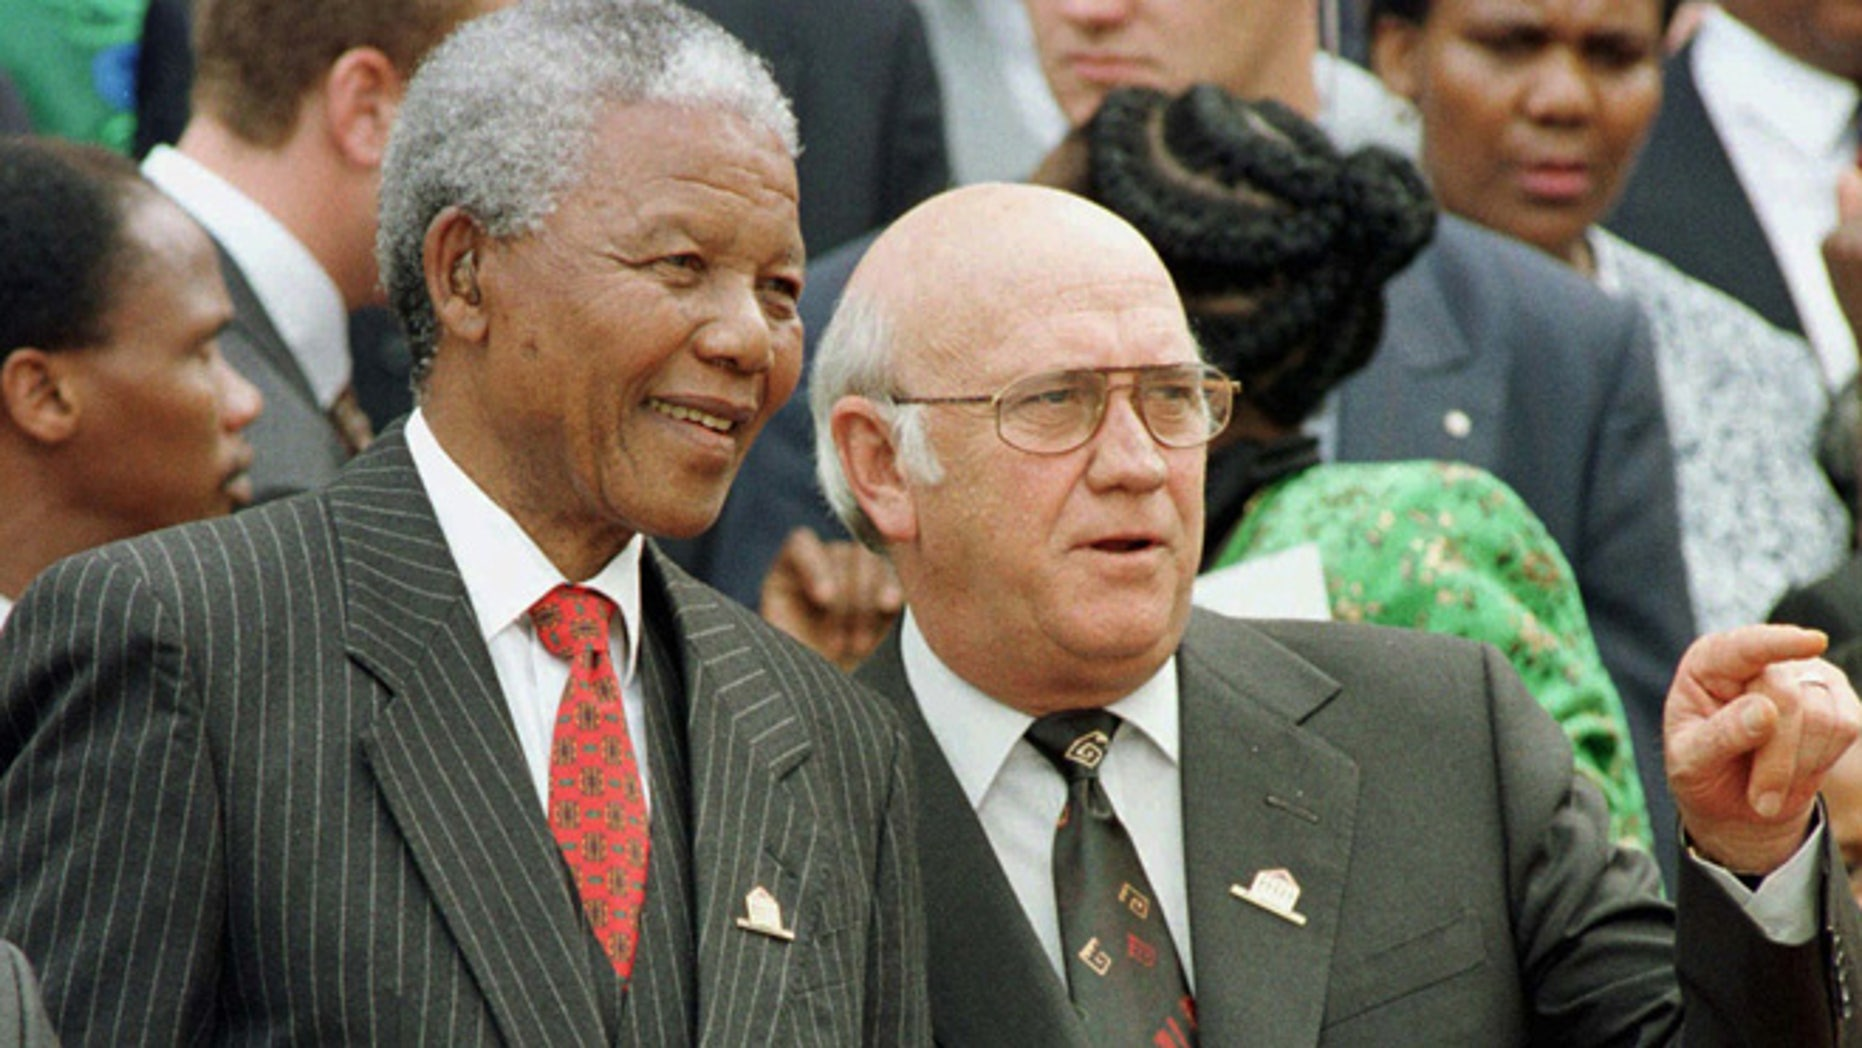 In this Wednesday May 8, 1996 file photo, South African President Nelson Mandela, left, and Deputy President F.W. de Klerk chat outside Parliament after the approval of South Africa's new constitution. de Klerk, the last leader of the apartheid era and a co-recipient of the 1993 Nobel Peace Prize with Nelson Mandela, has suffered dizziness and will be fitted with a pacemaker, Tuesday June 2, 2013, to help his heart function.